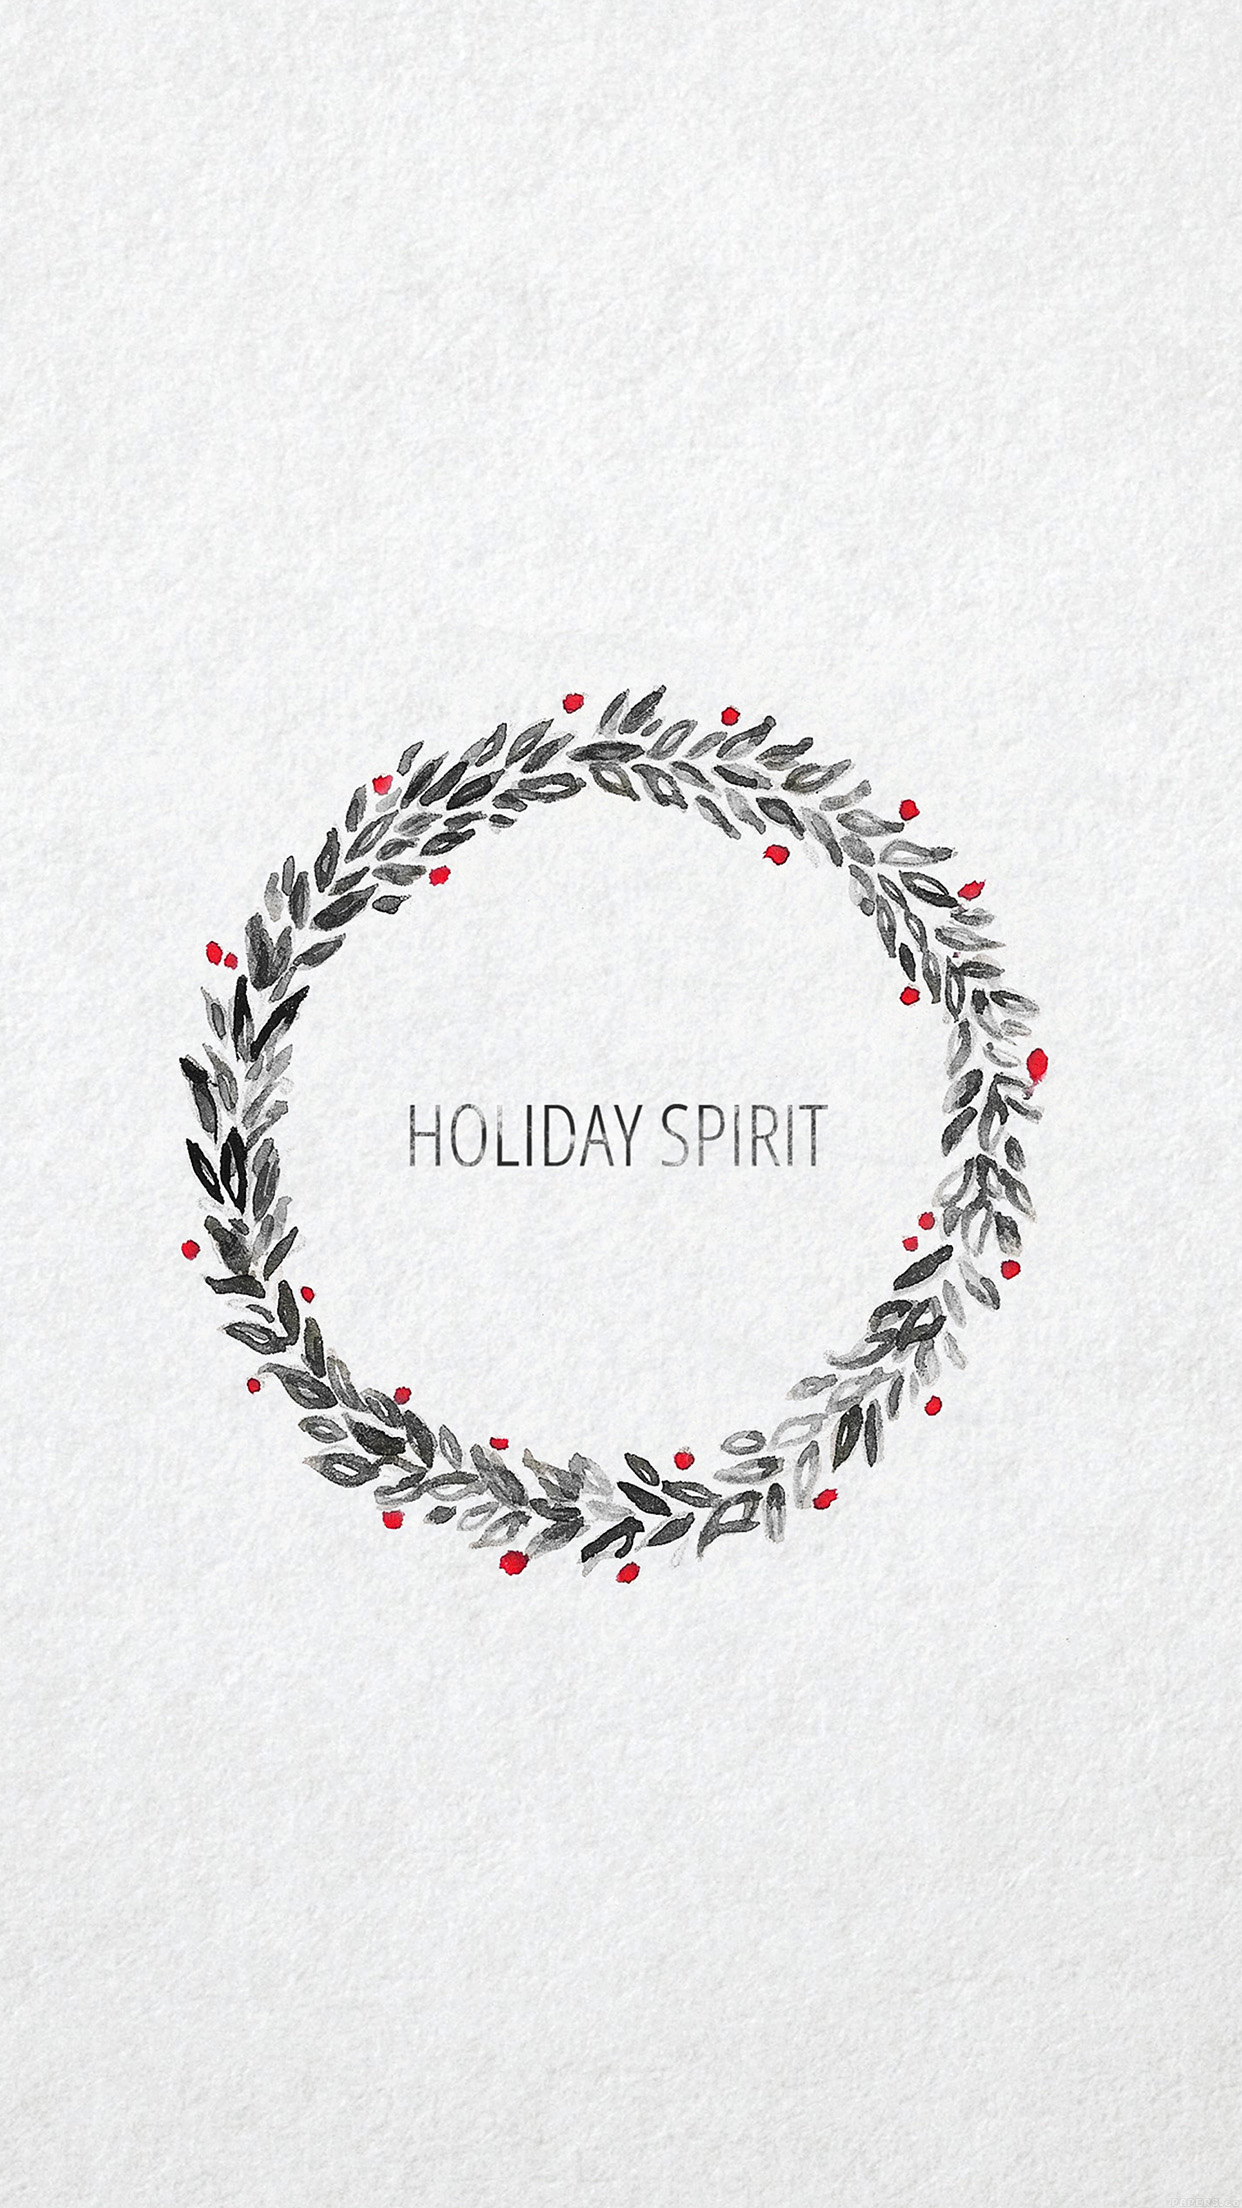 Festive Christmas wallpapers for iPhone and iPad